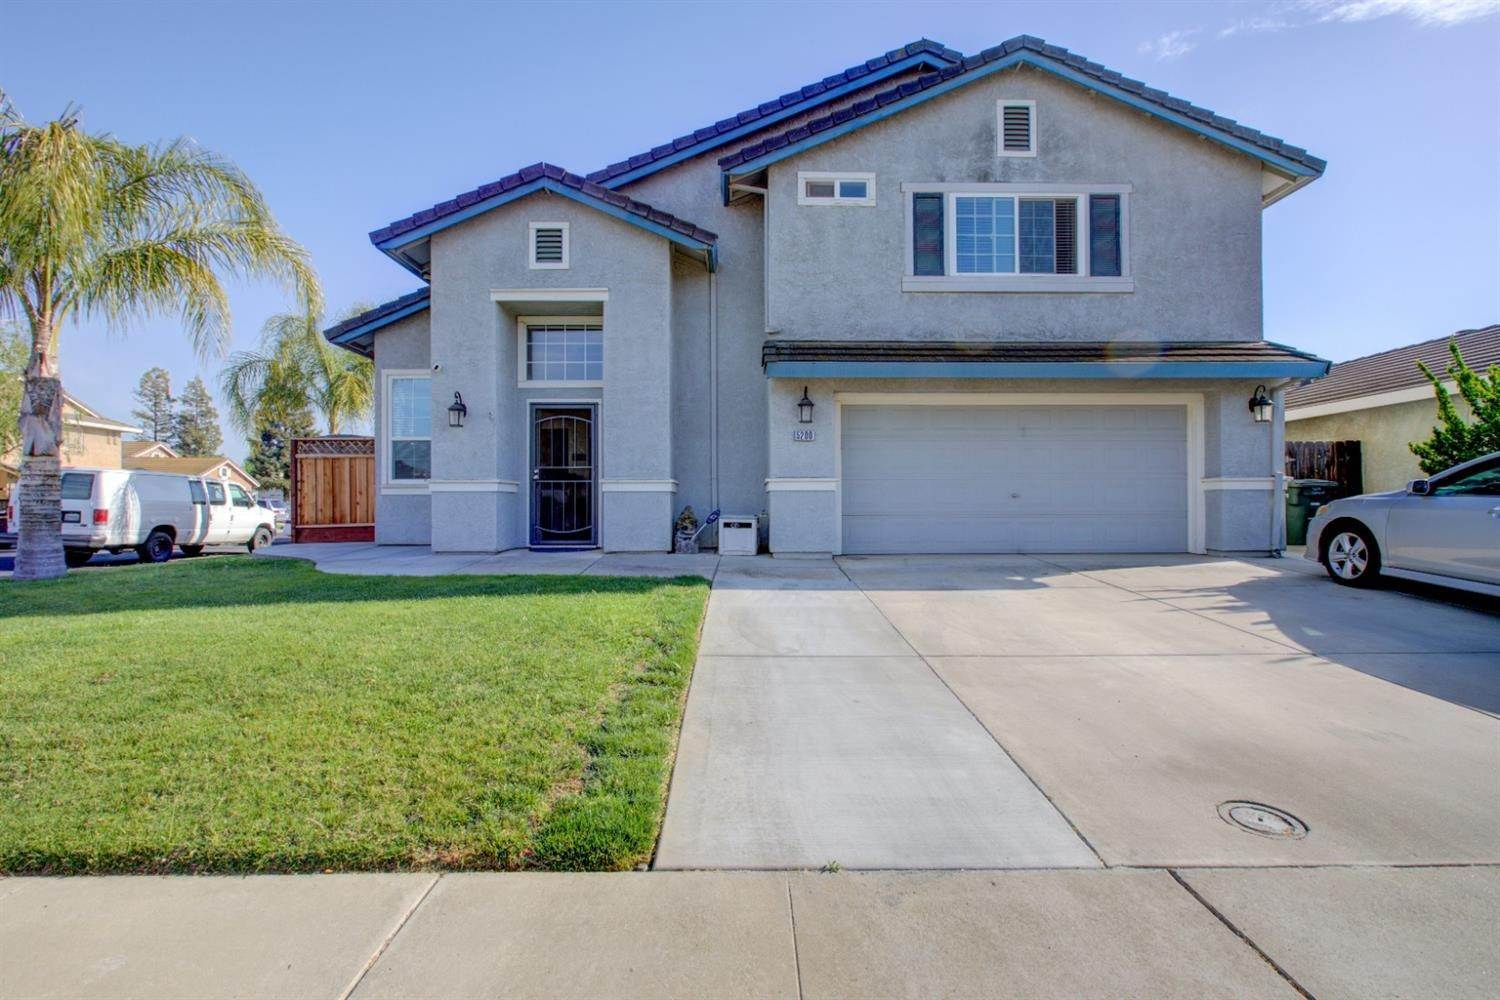 Single Family Homes for Active at 5200 Corfu Circle Salida, California 95368 United States